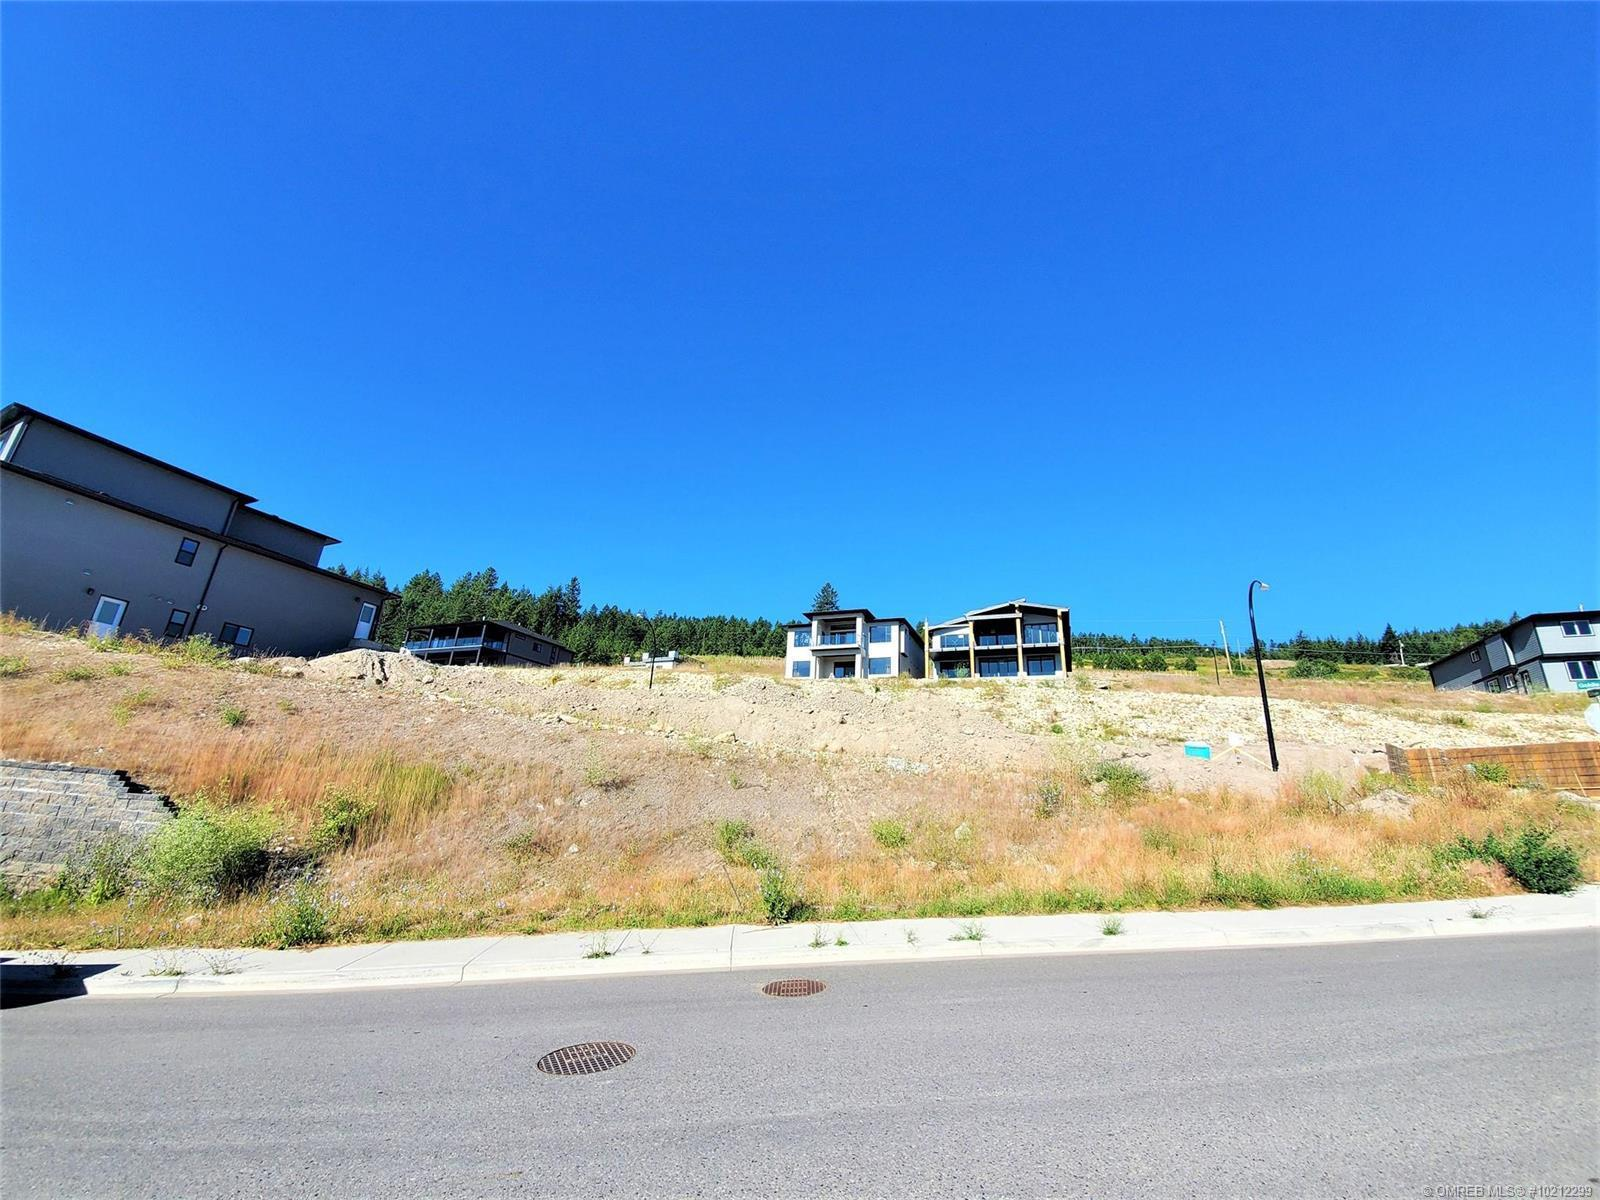 Listing 10212299 - Thumbmnail Photo # 5